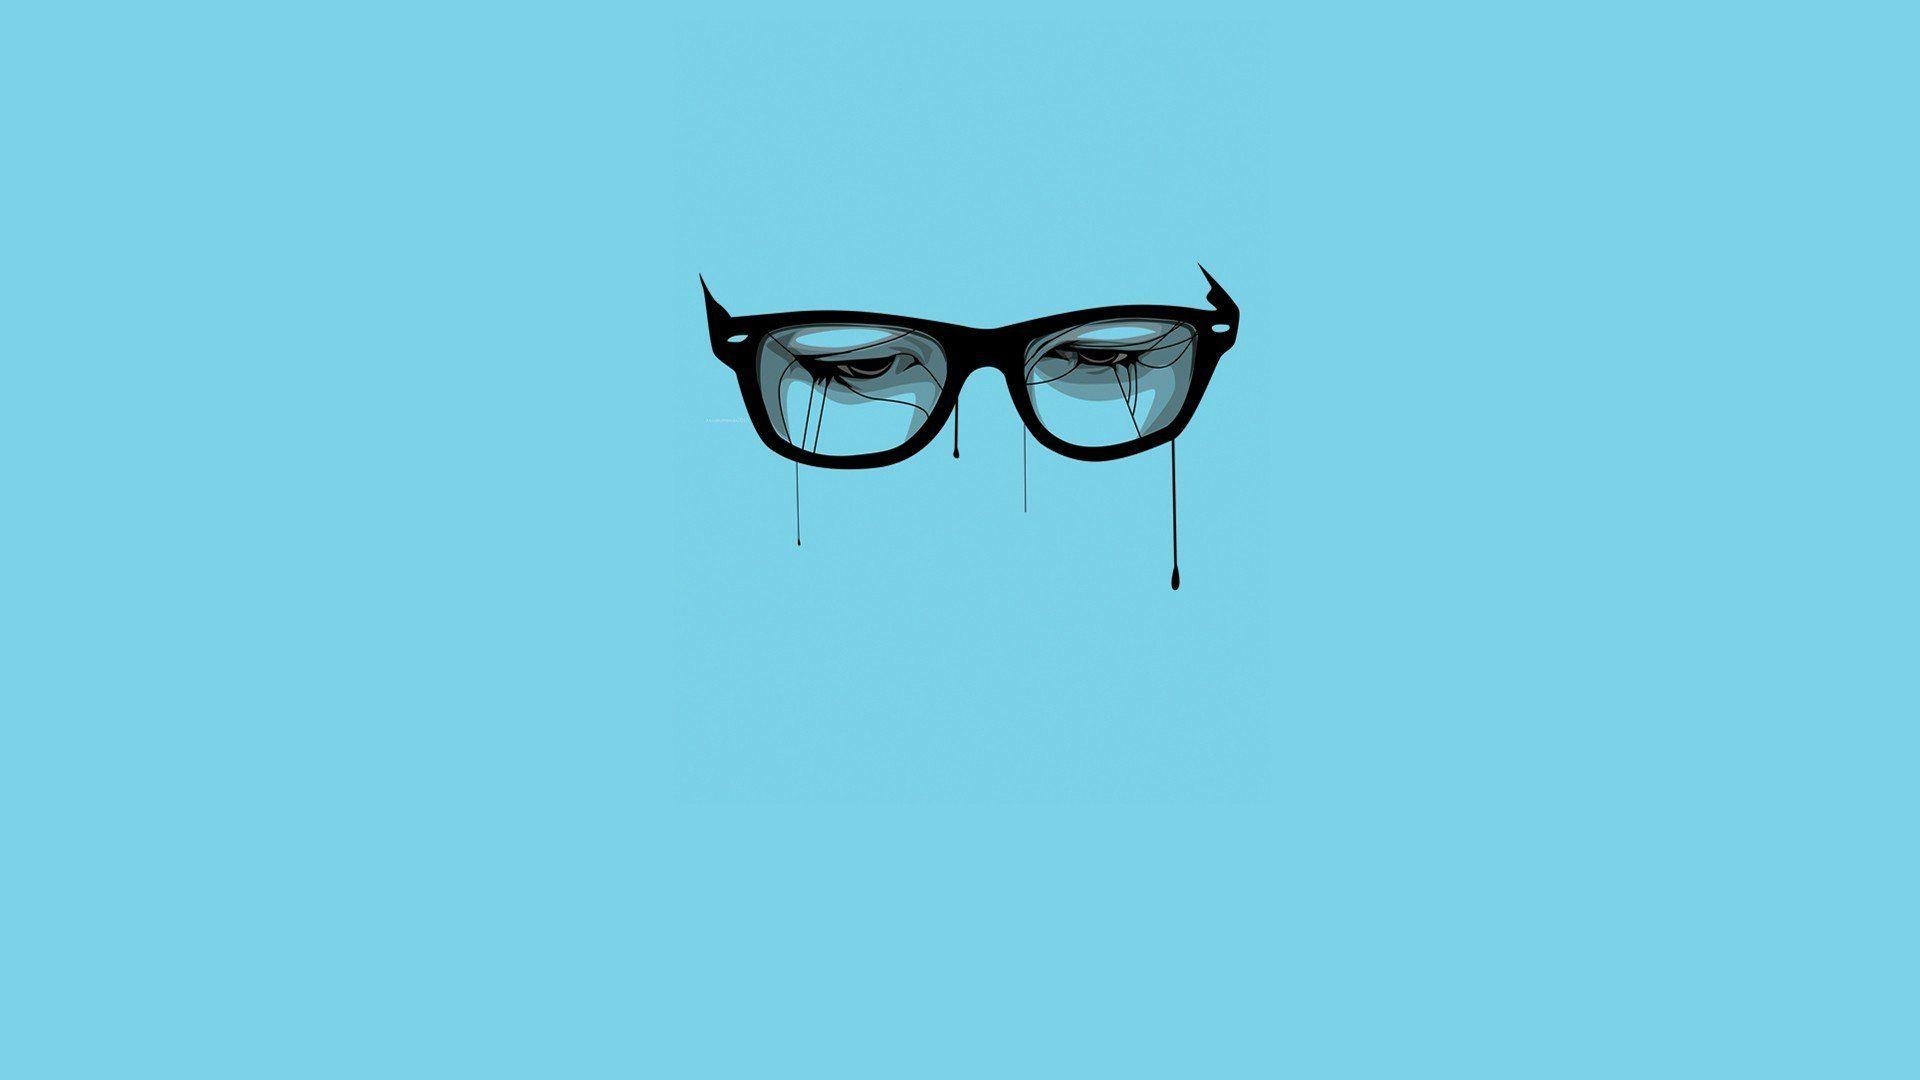 Blue Backgrounds Breaking Bad Glasses Minimalistic